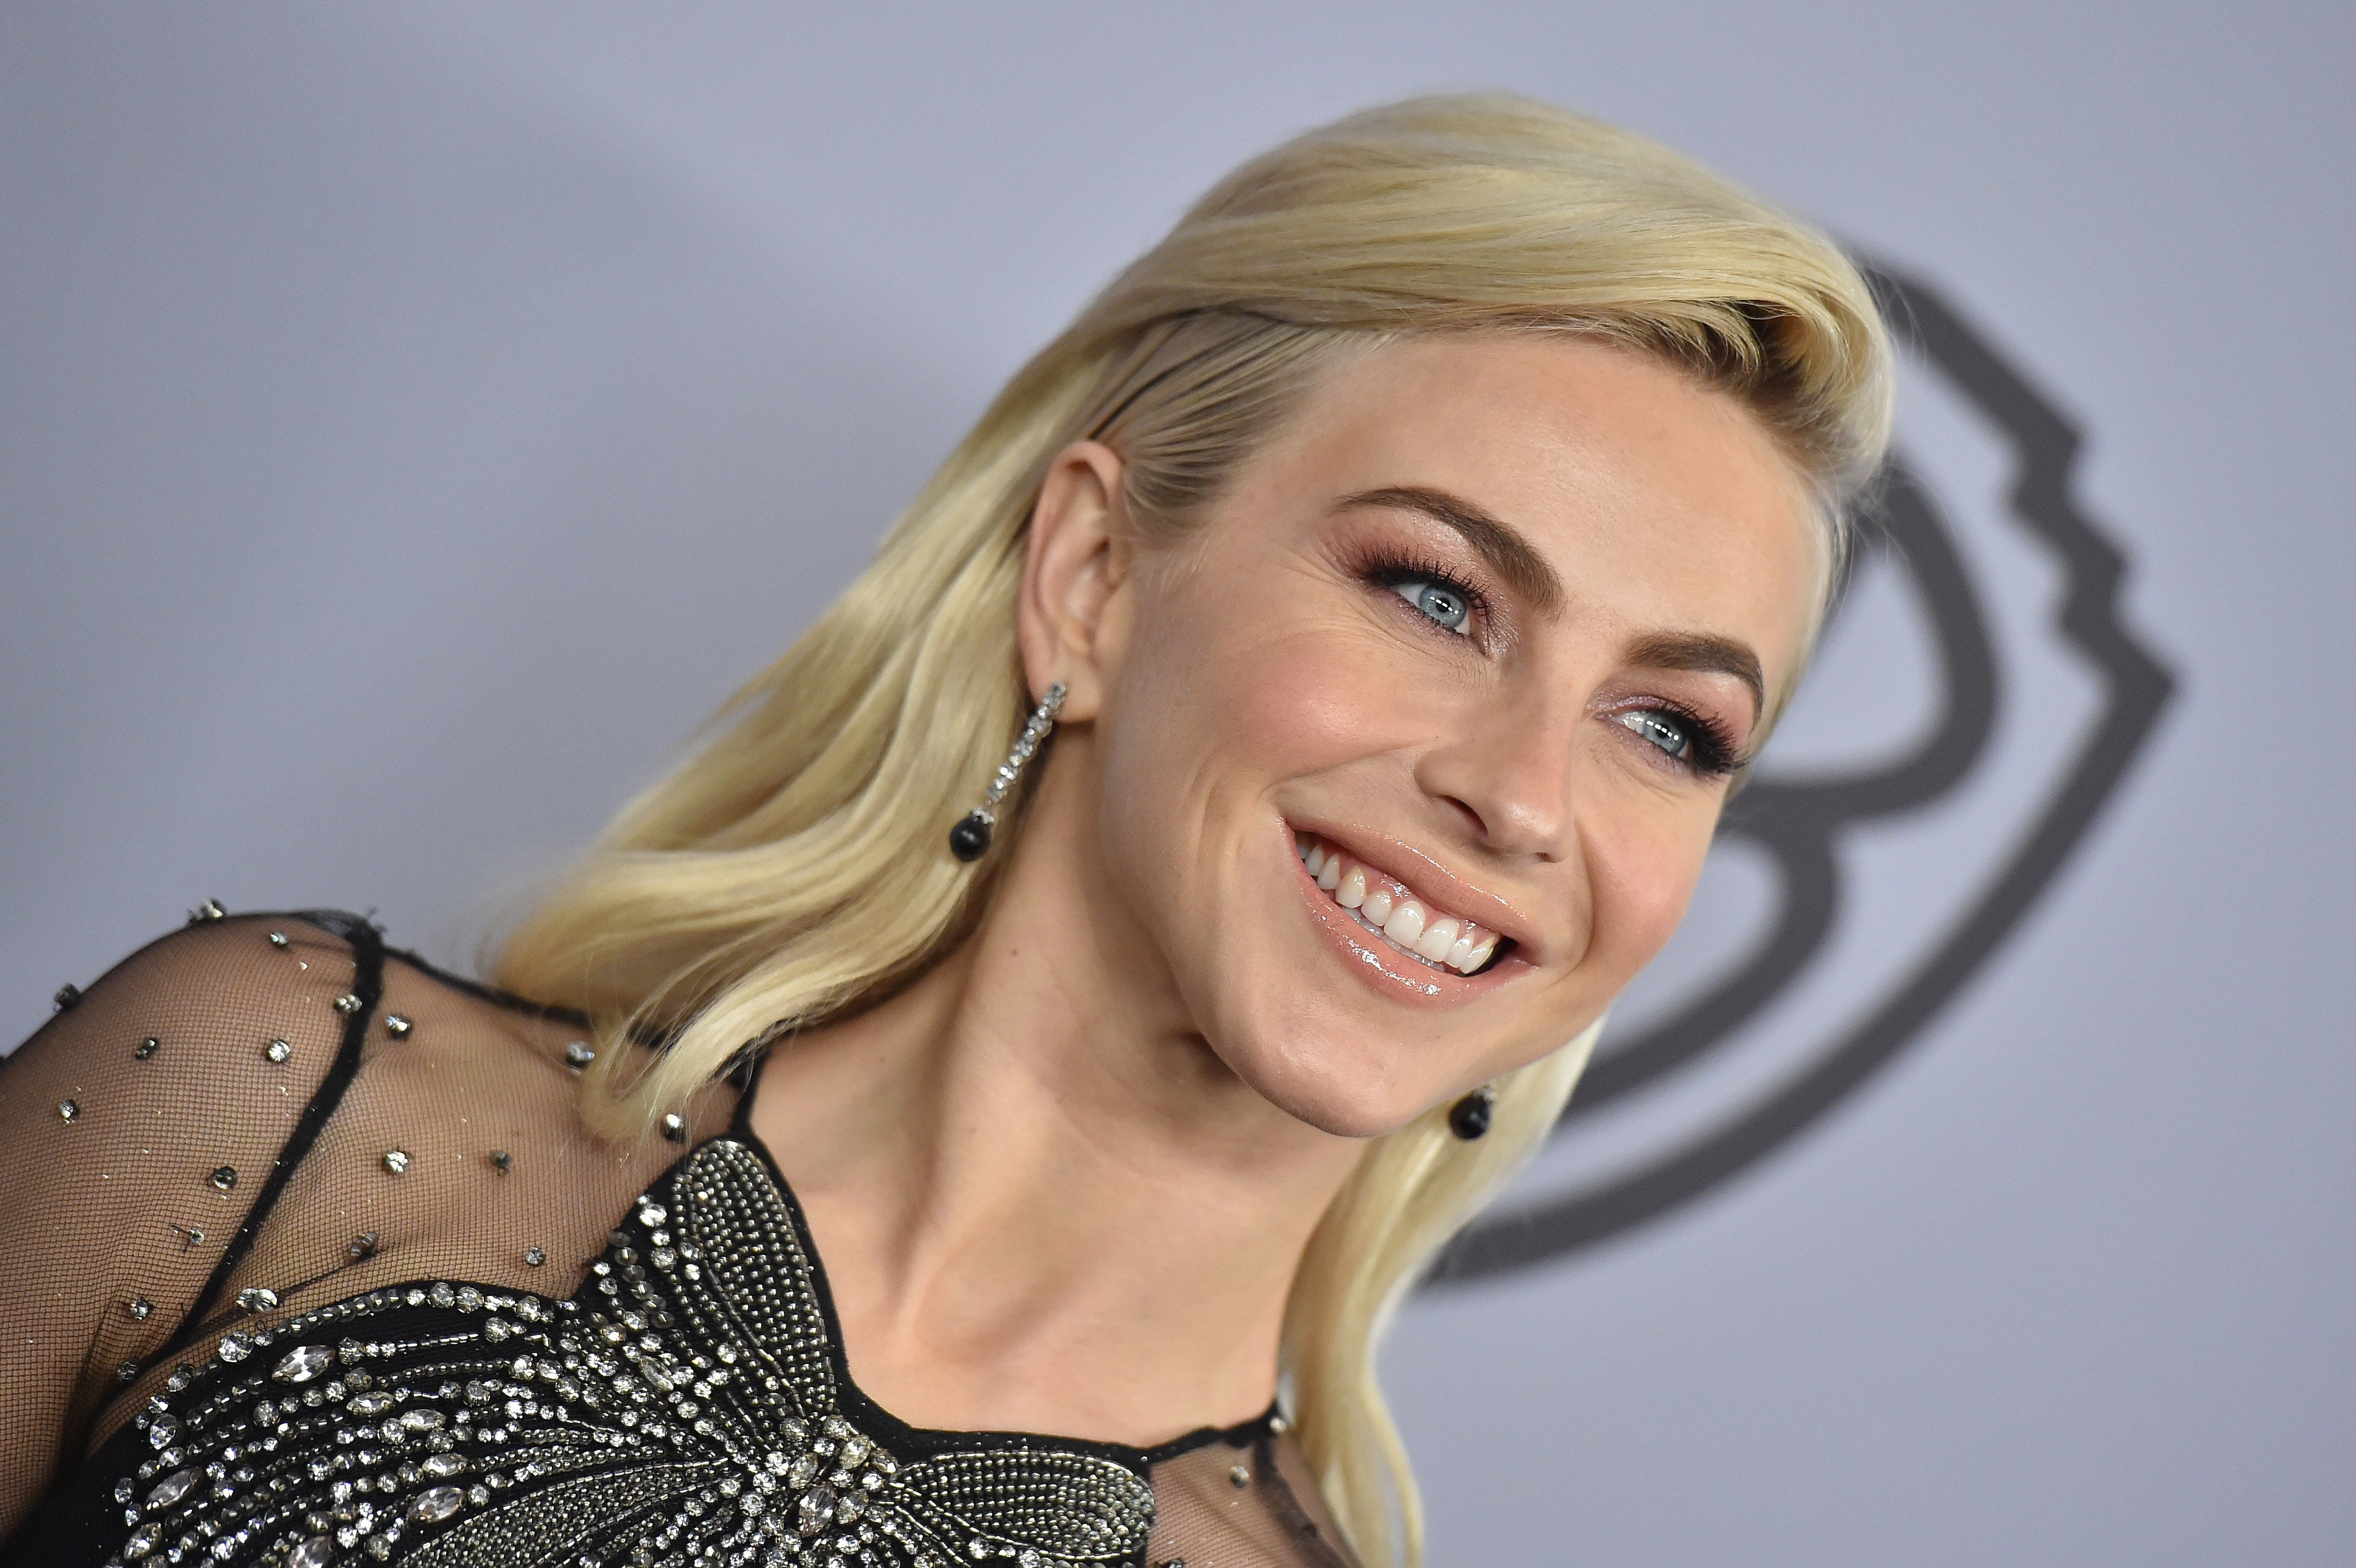 Actress Julianne Hough wasn't diagnosed withendometriosis until her 20s, but she lived with the...